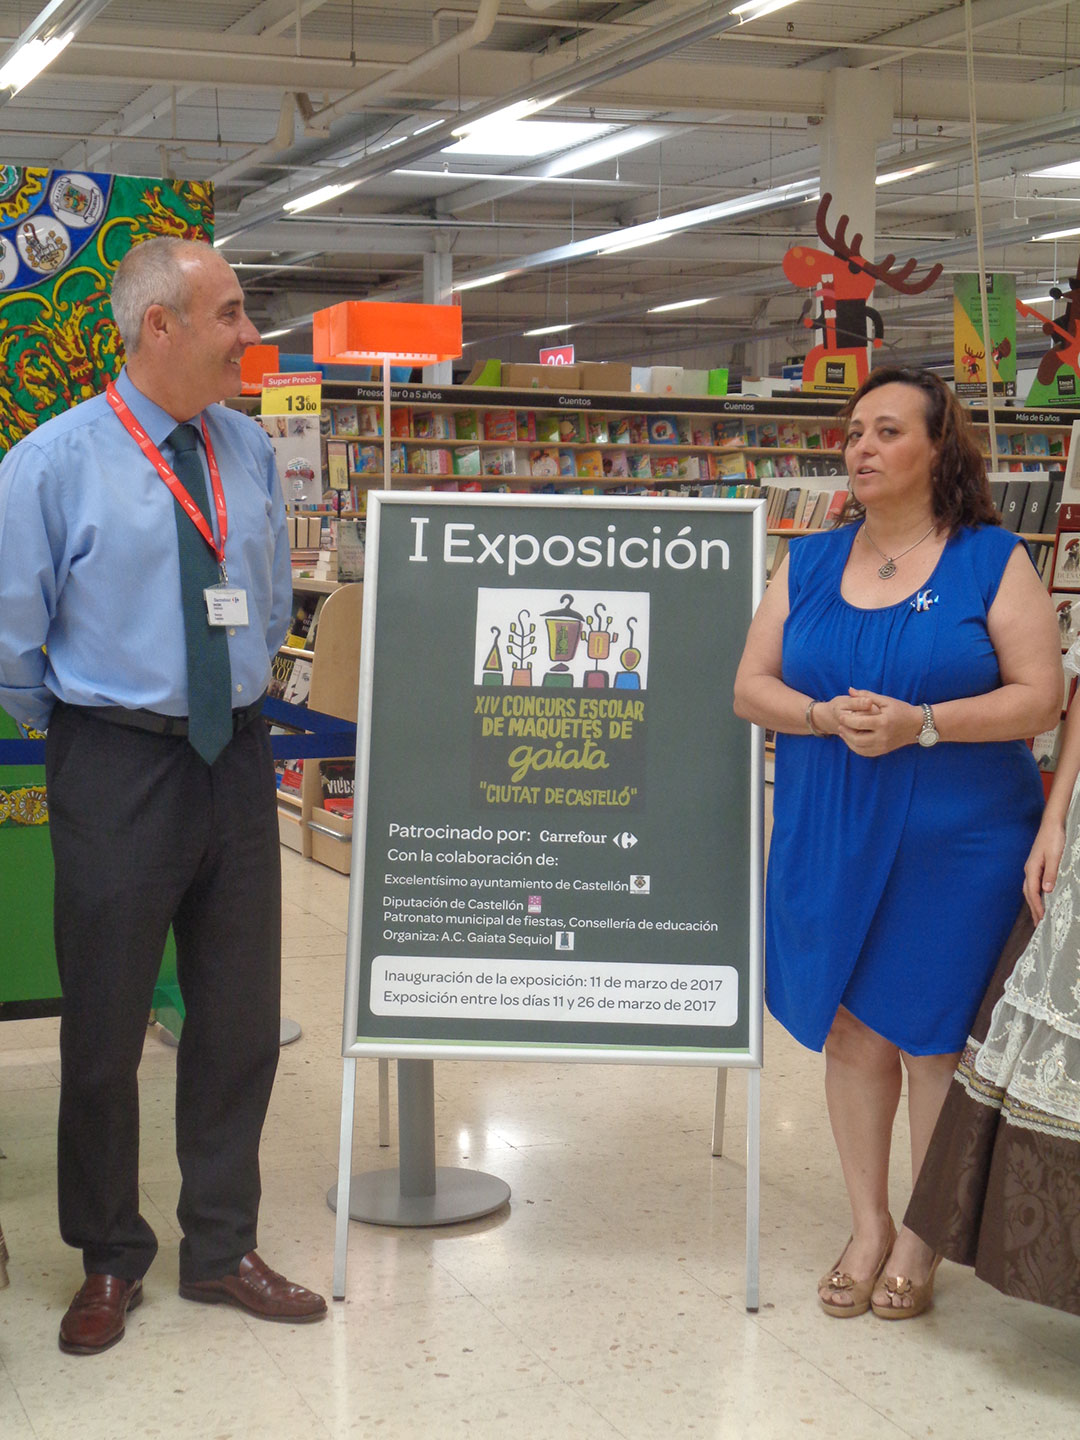 160621-expo-carrefour-1-5858